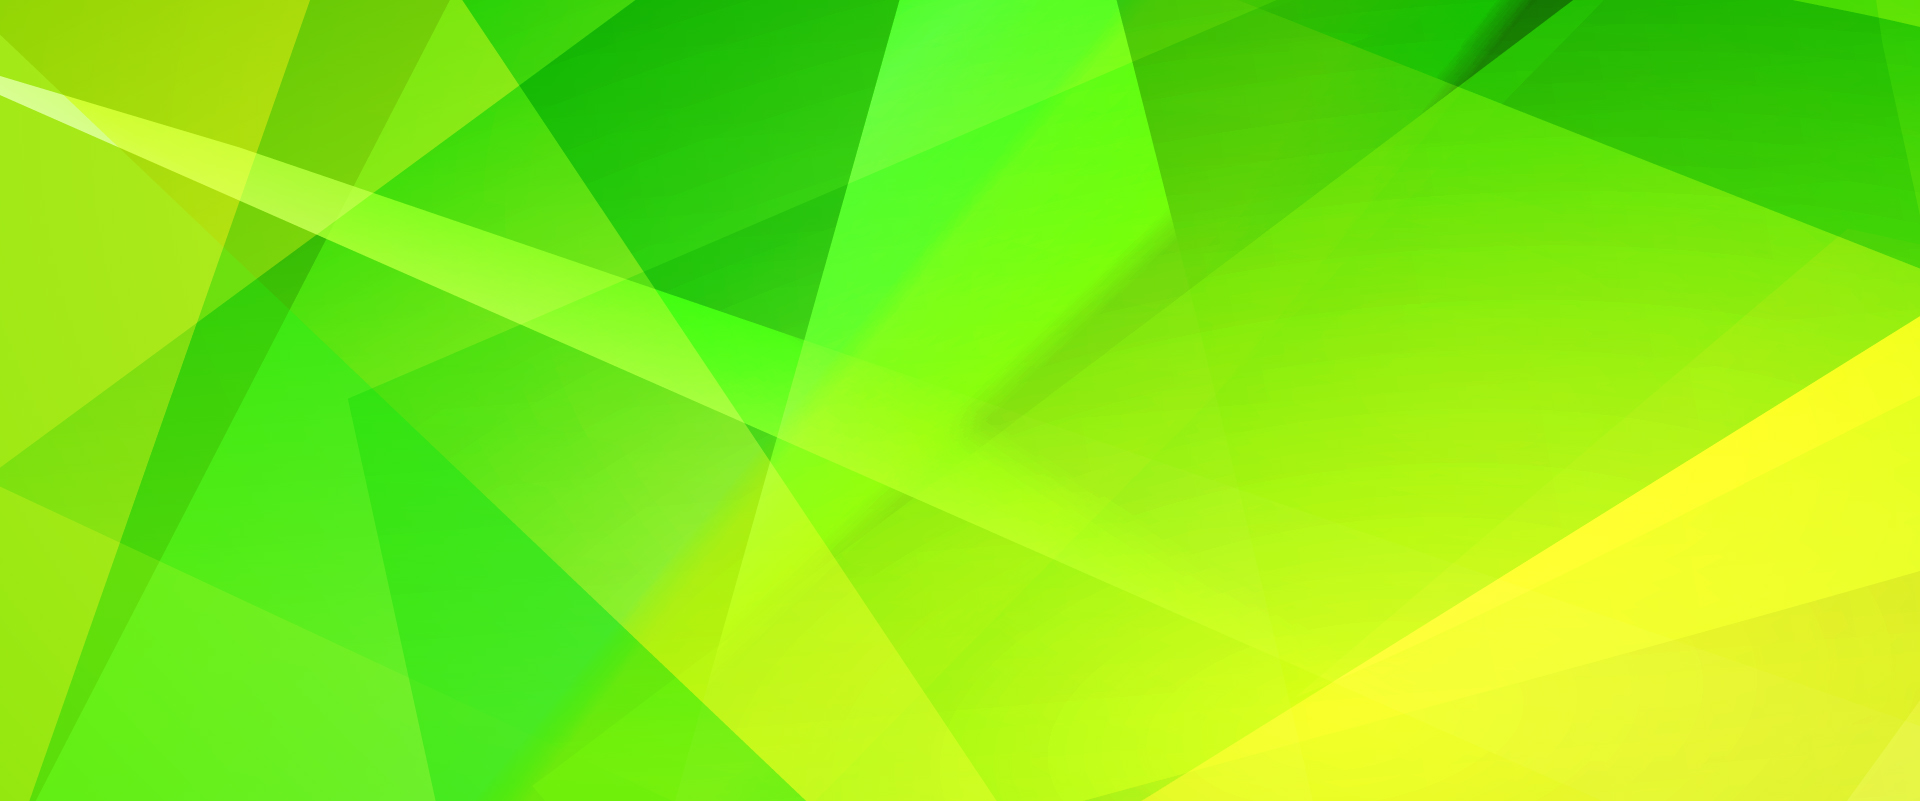 green geometric abstract background  geometry  poster